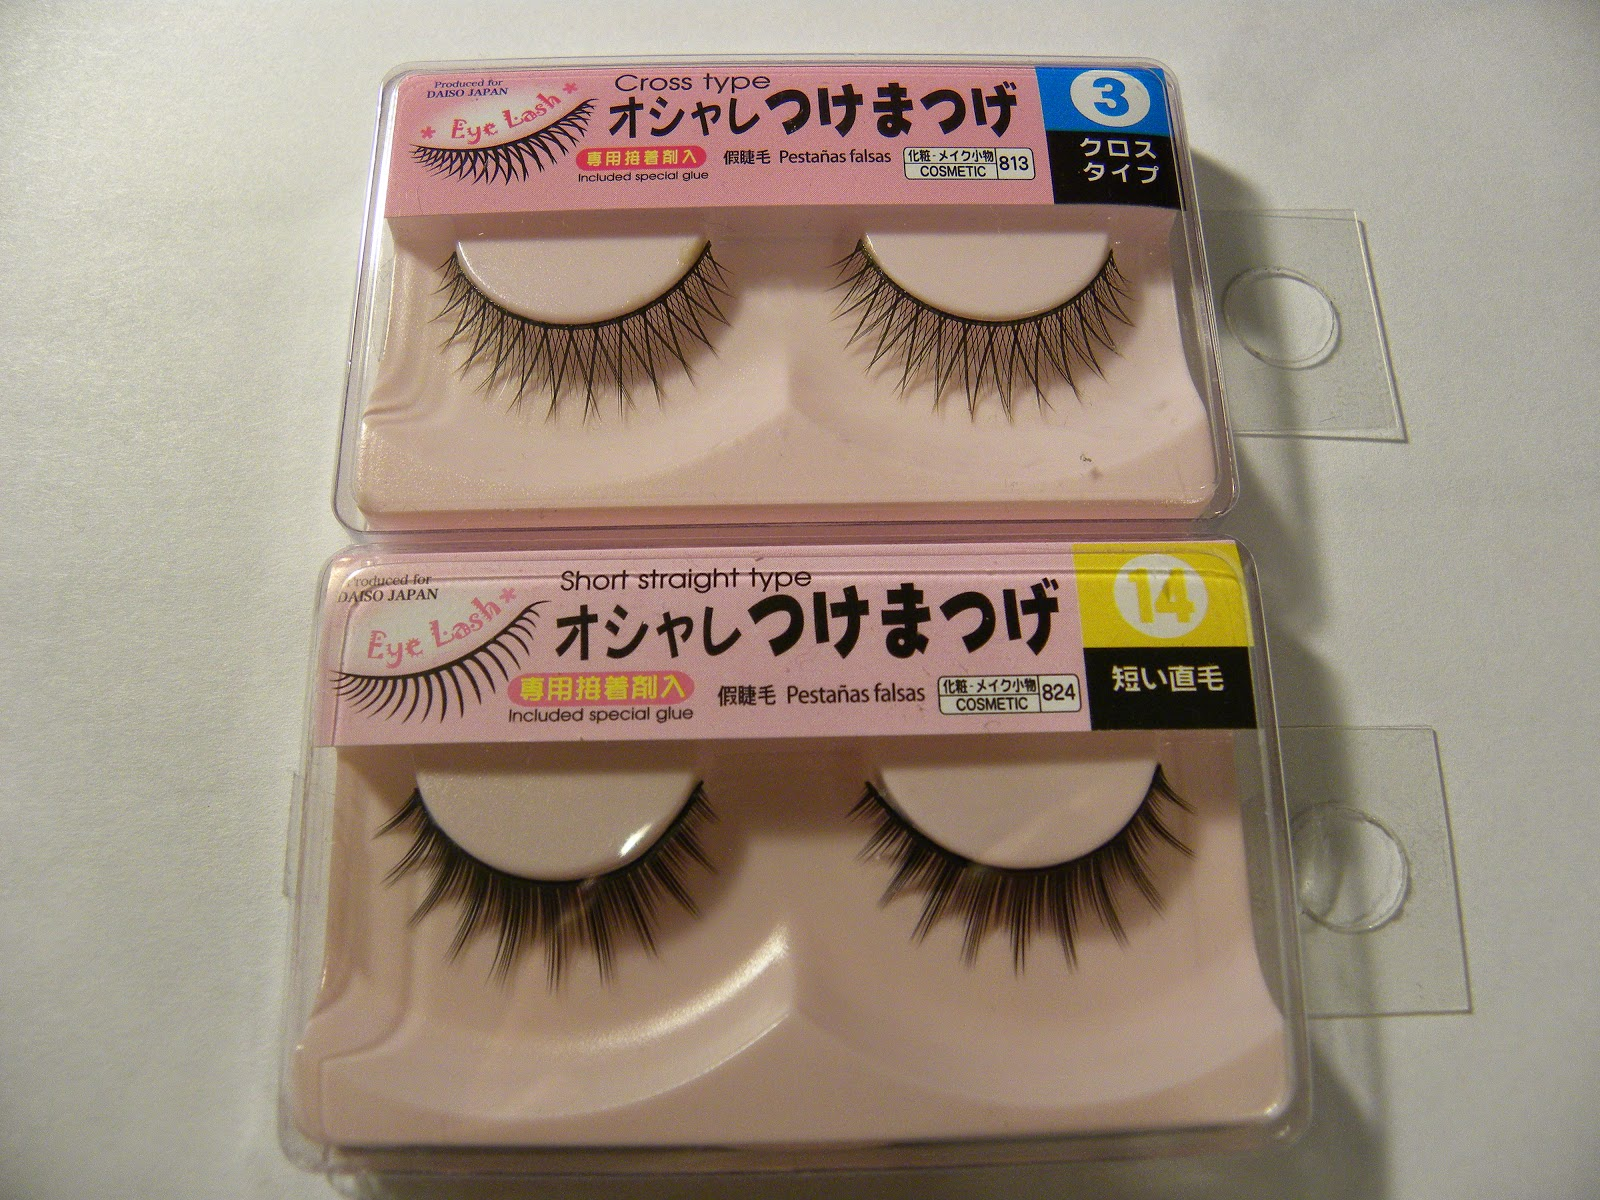 8326d8feec1 I'm not sure about the exact brand of this, but I heard it was made by the  same manufacturer of the Dolly Wink lashes! These lashes are pretty  comfortable ...